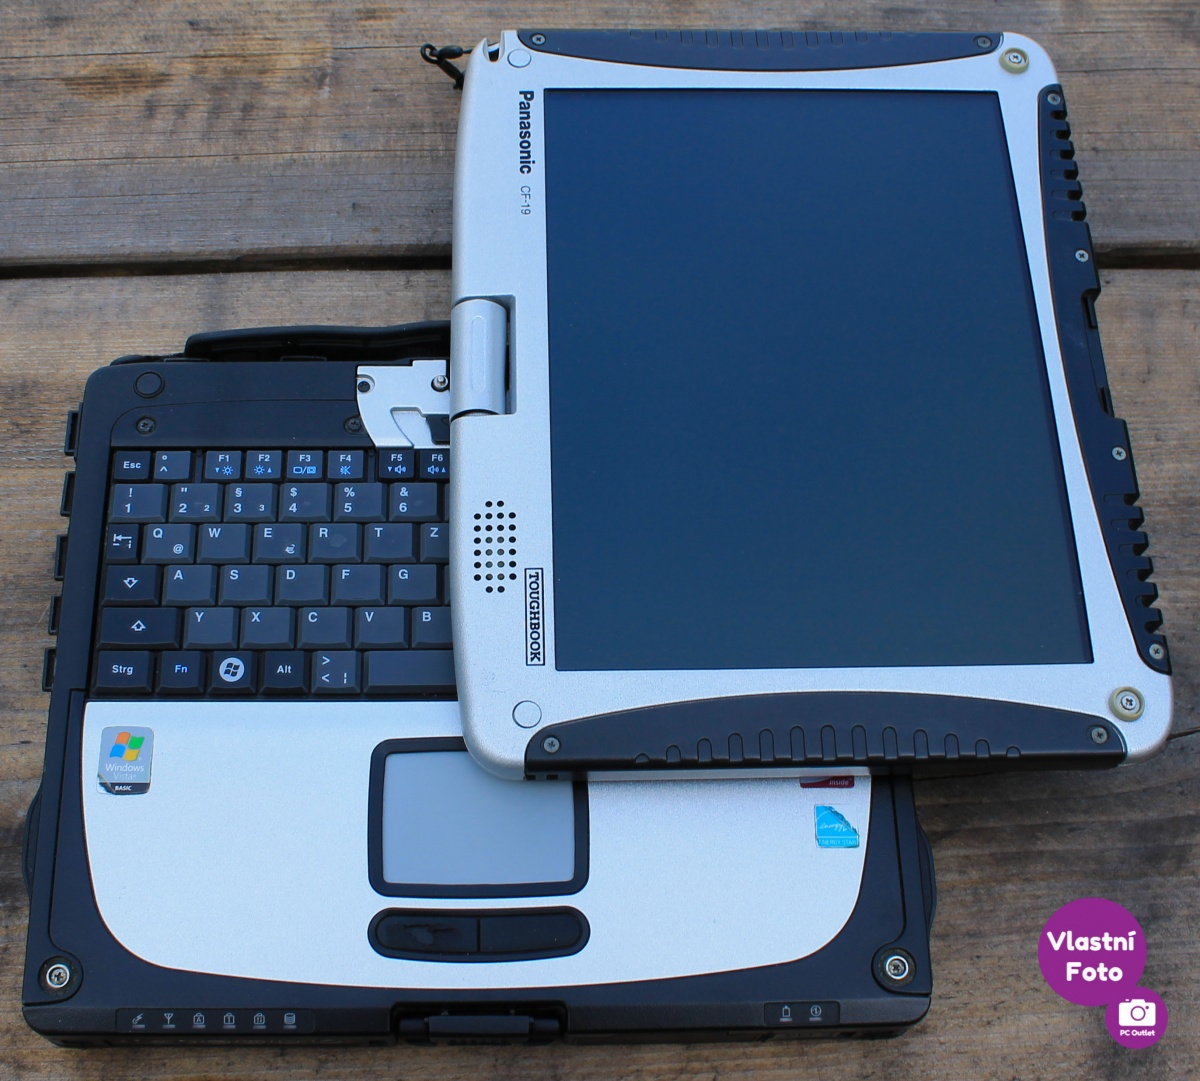 Panasonic_Toughbook_CF-19-8.jpg